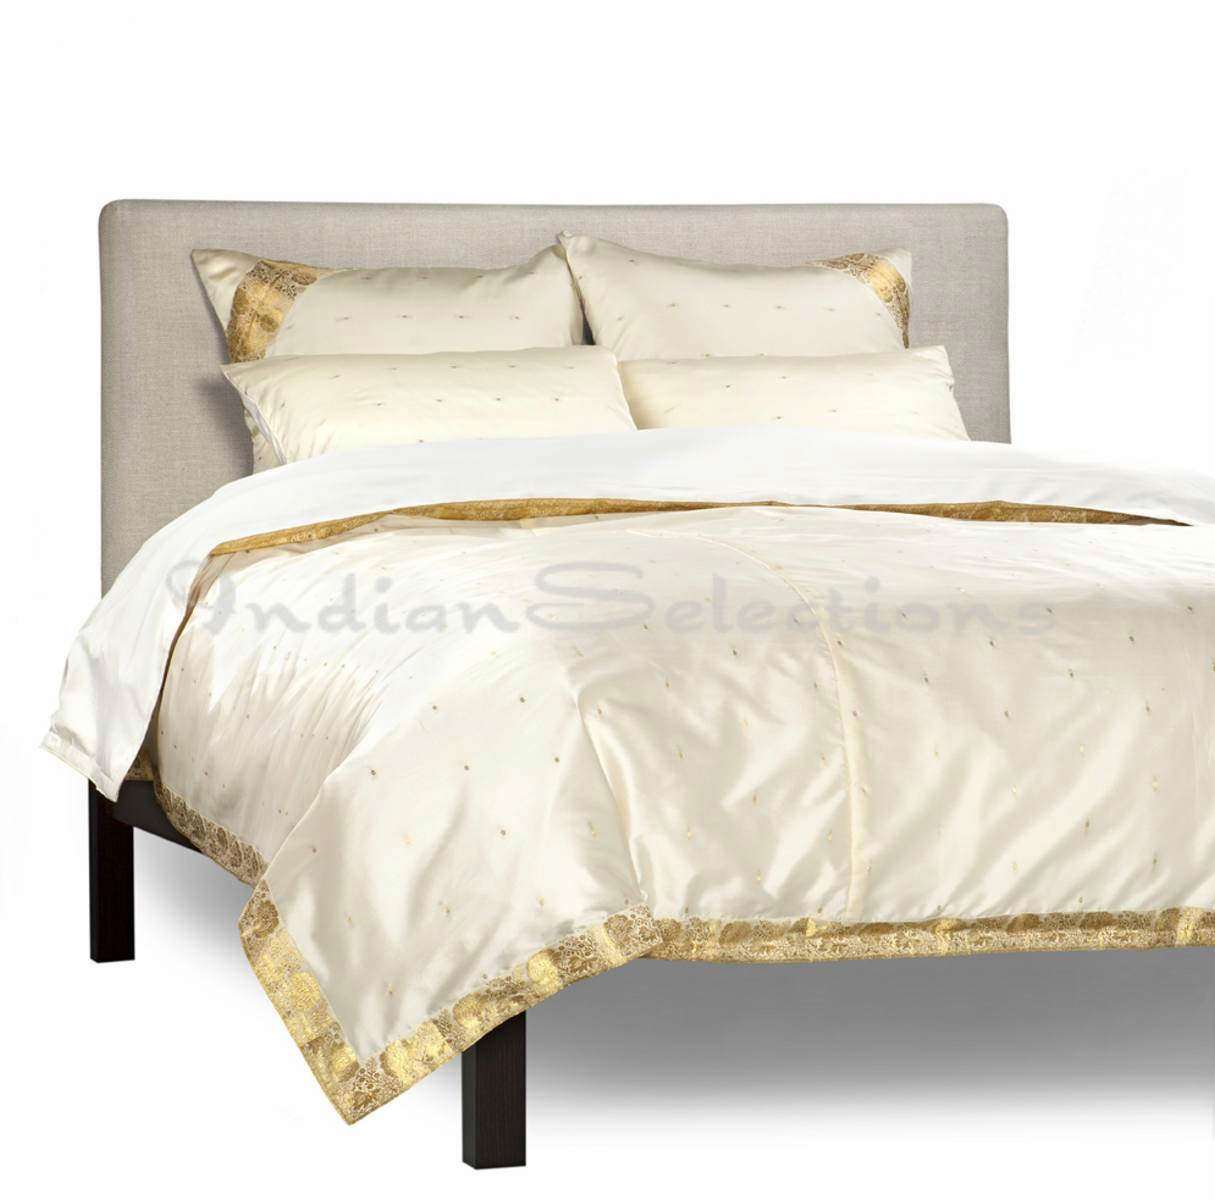 Cream-5 Piece Handmade Sari Duvet Cover Set with Pillow Covers  Euro Sham-Queen